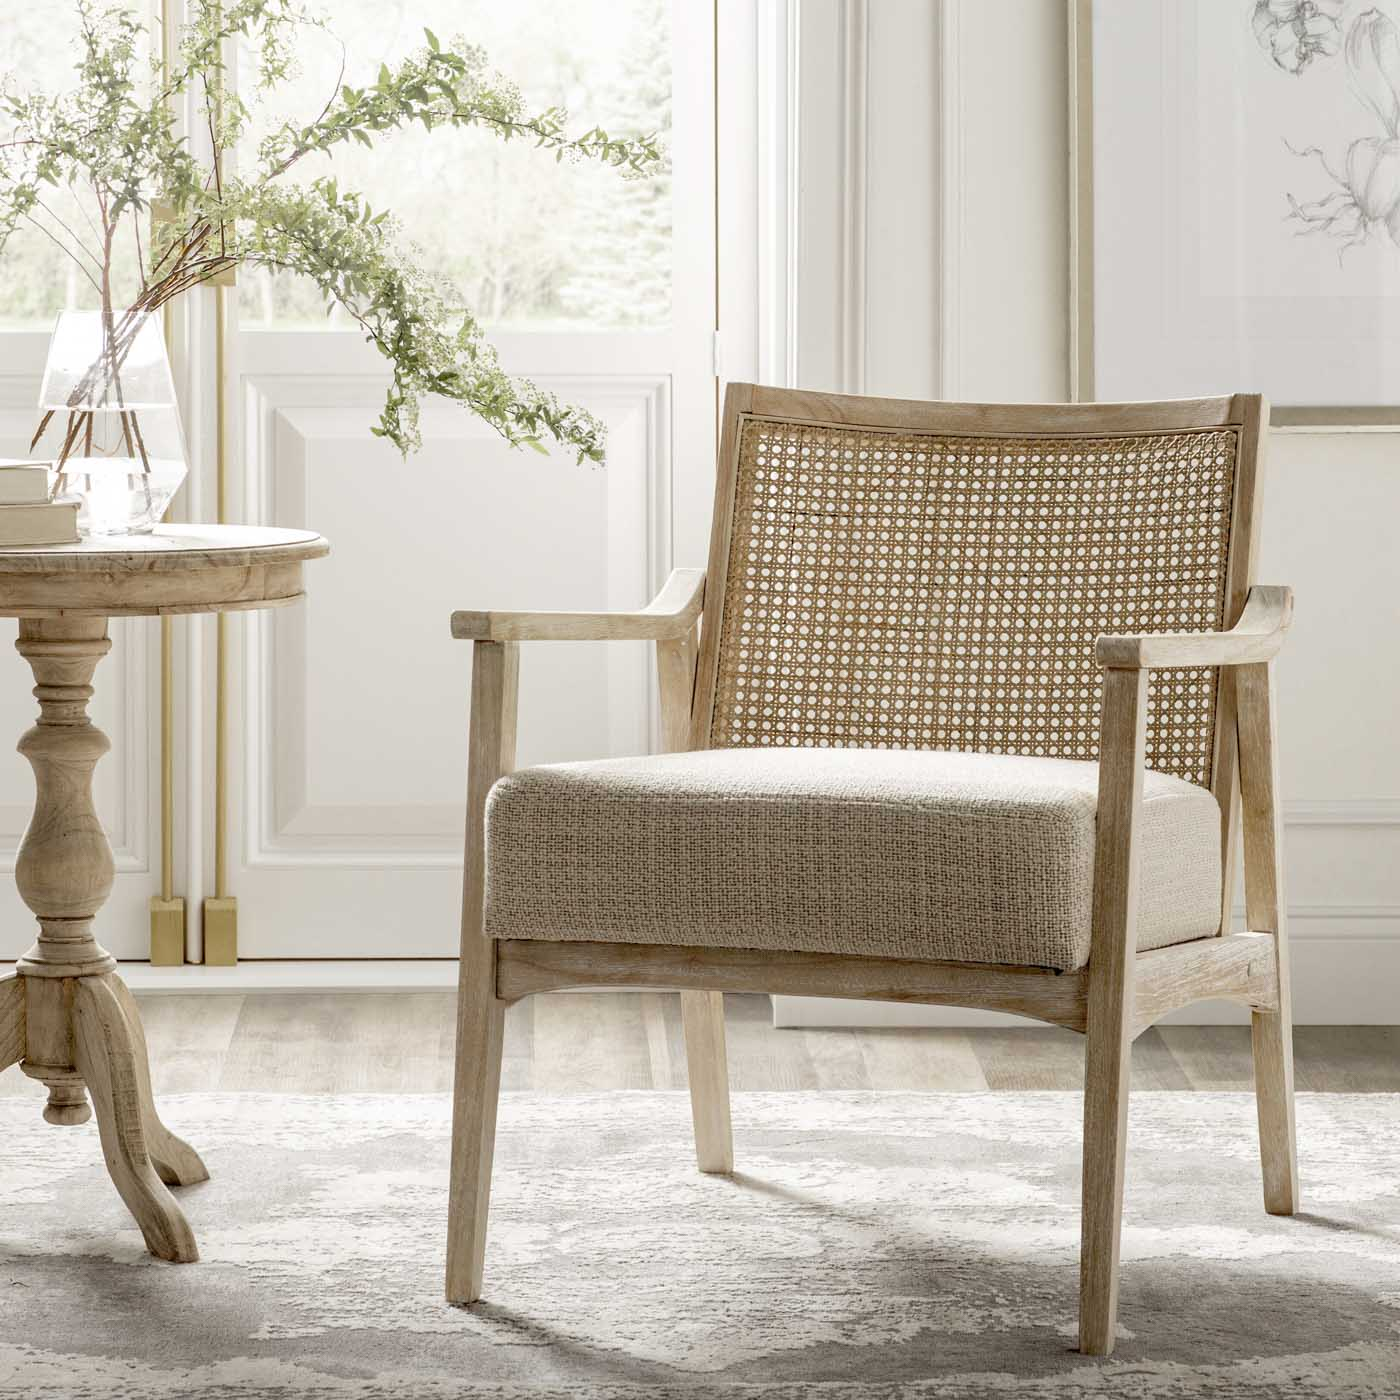 16 Rattan Accent Chair Favorites With Cane Woven Kelley Nan